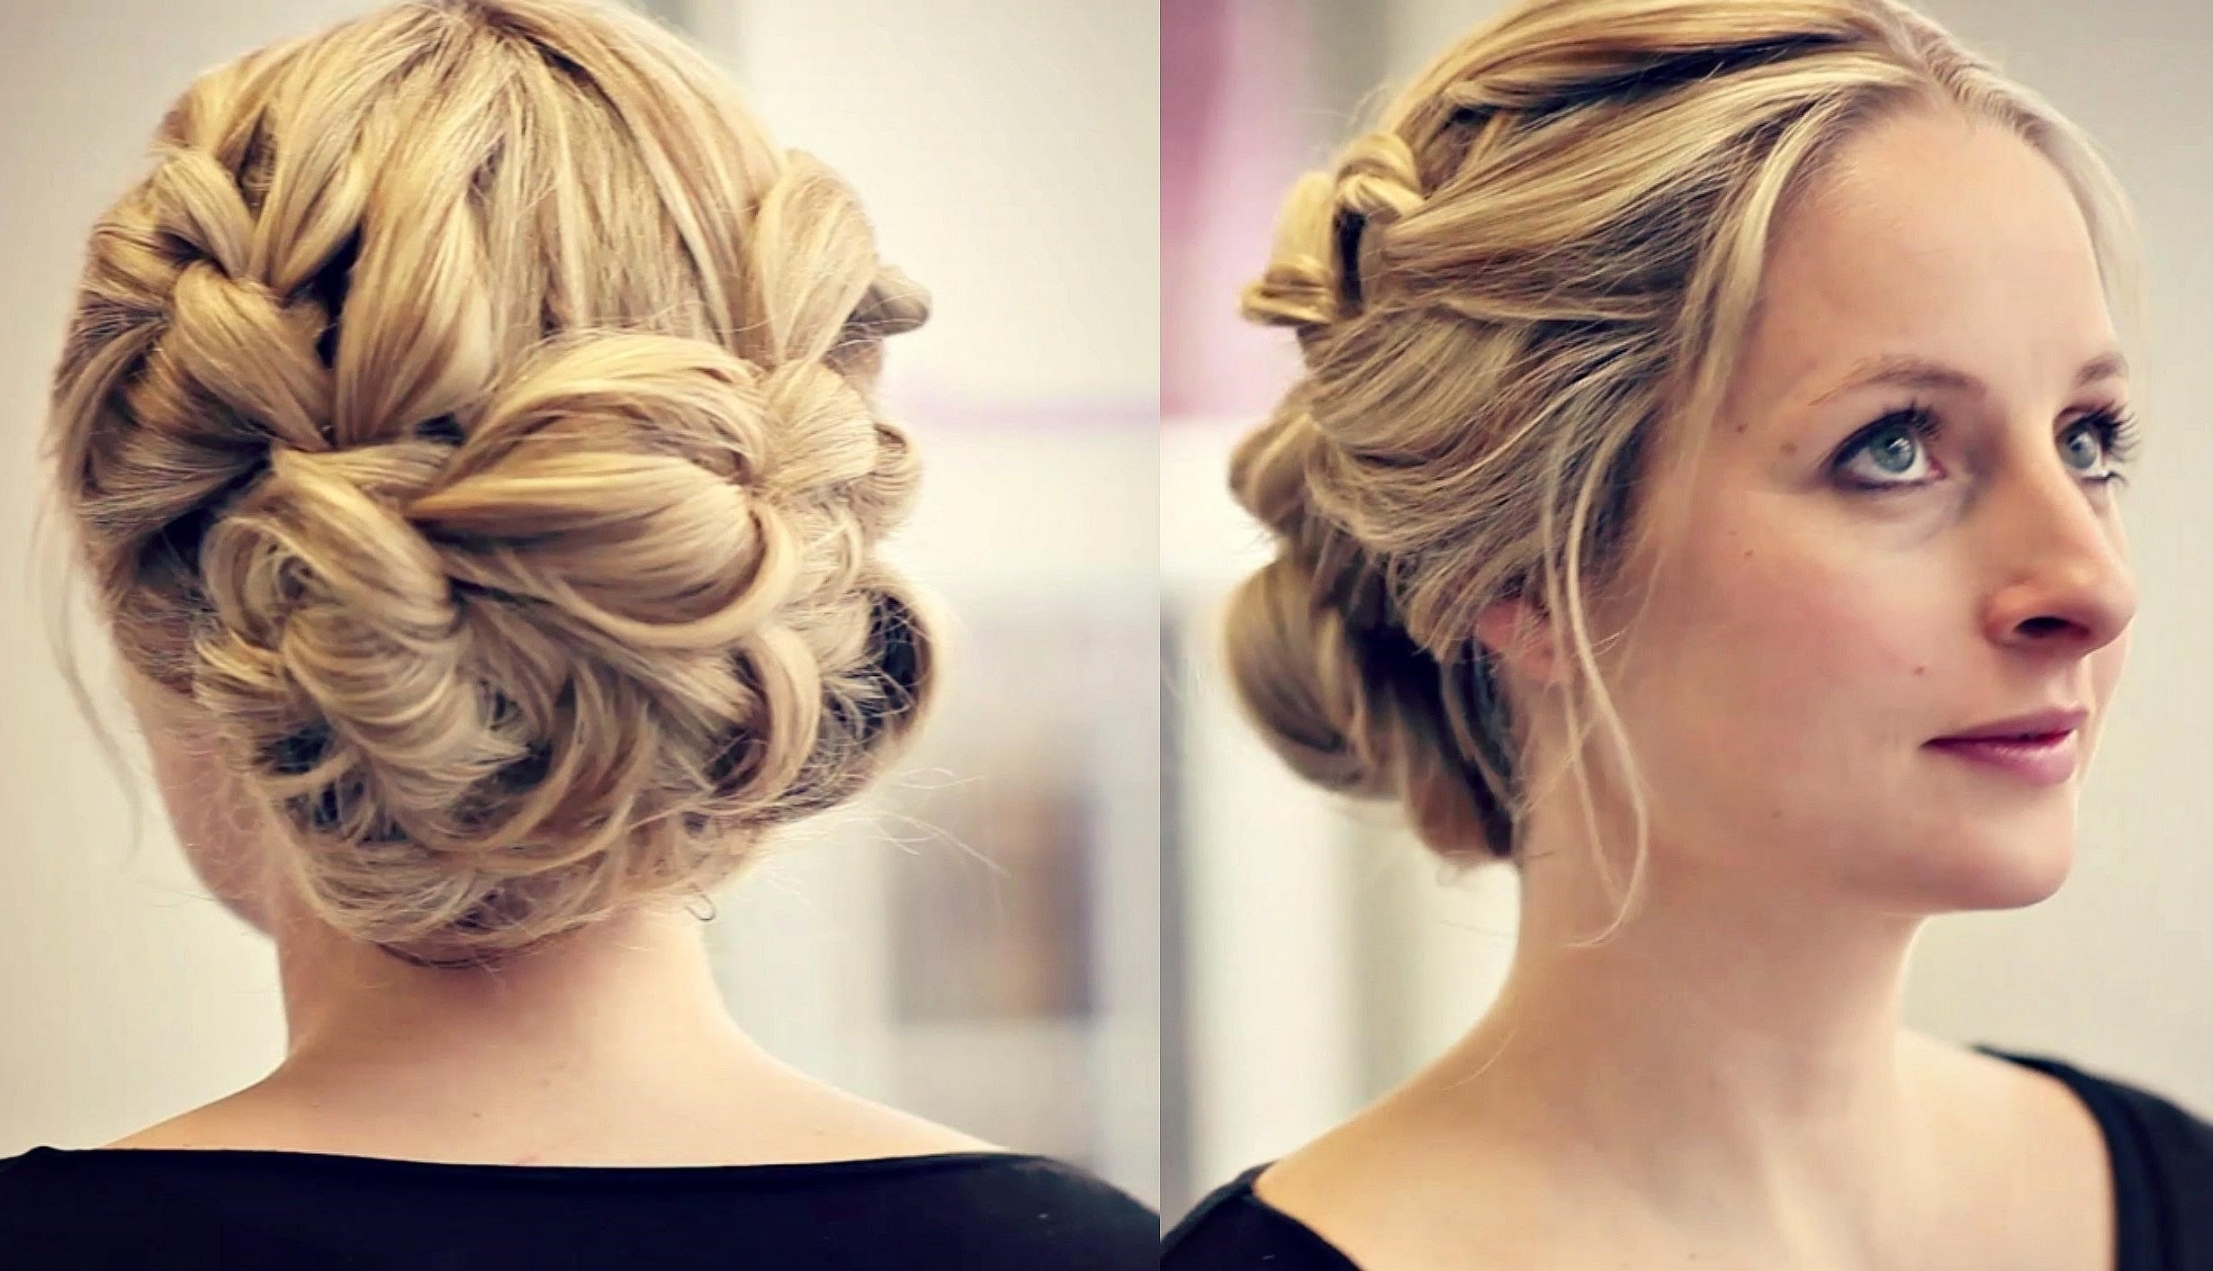 Updos For Short Hair Inspirational Hairstyles Updos Short Wedding Regarding Wedding Updo Hairstyles For Short Hair (View 10 of 15)